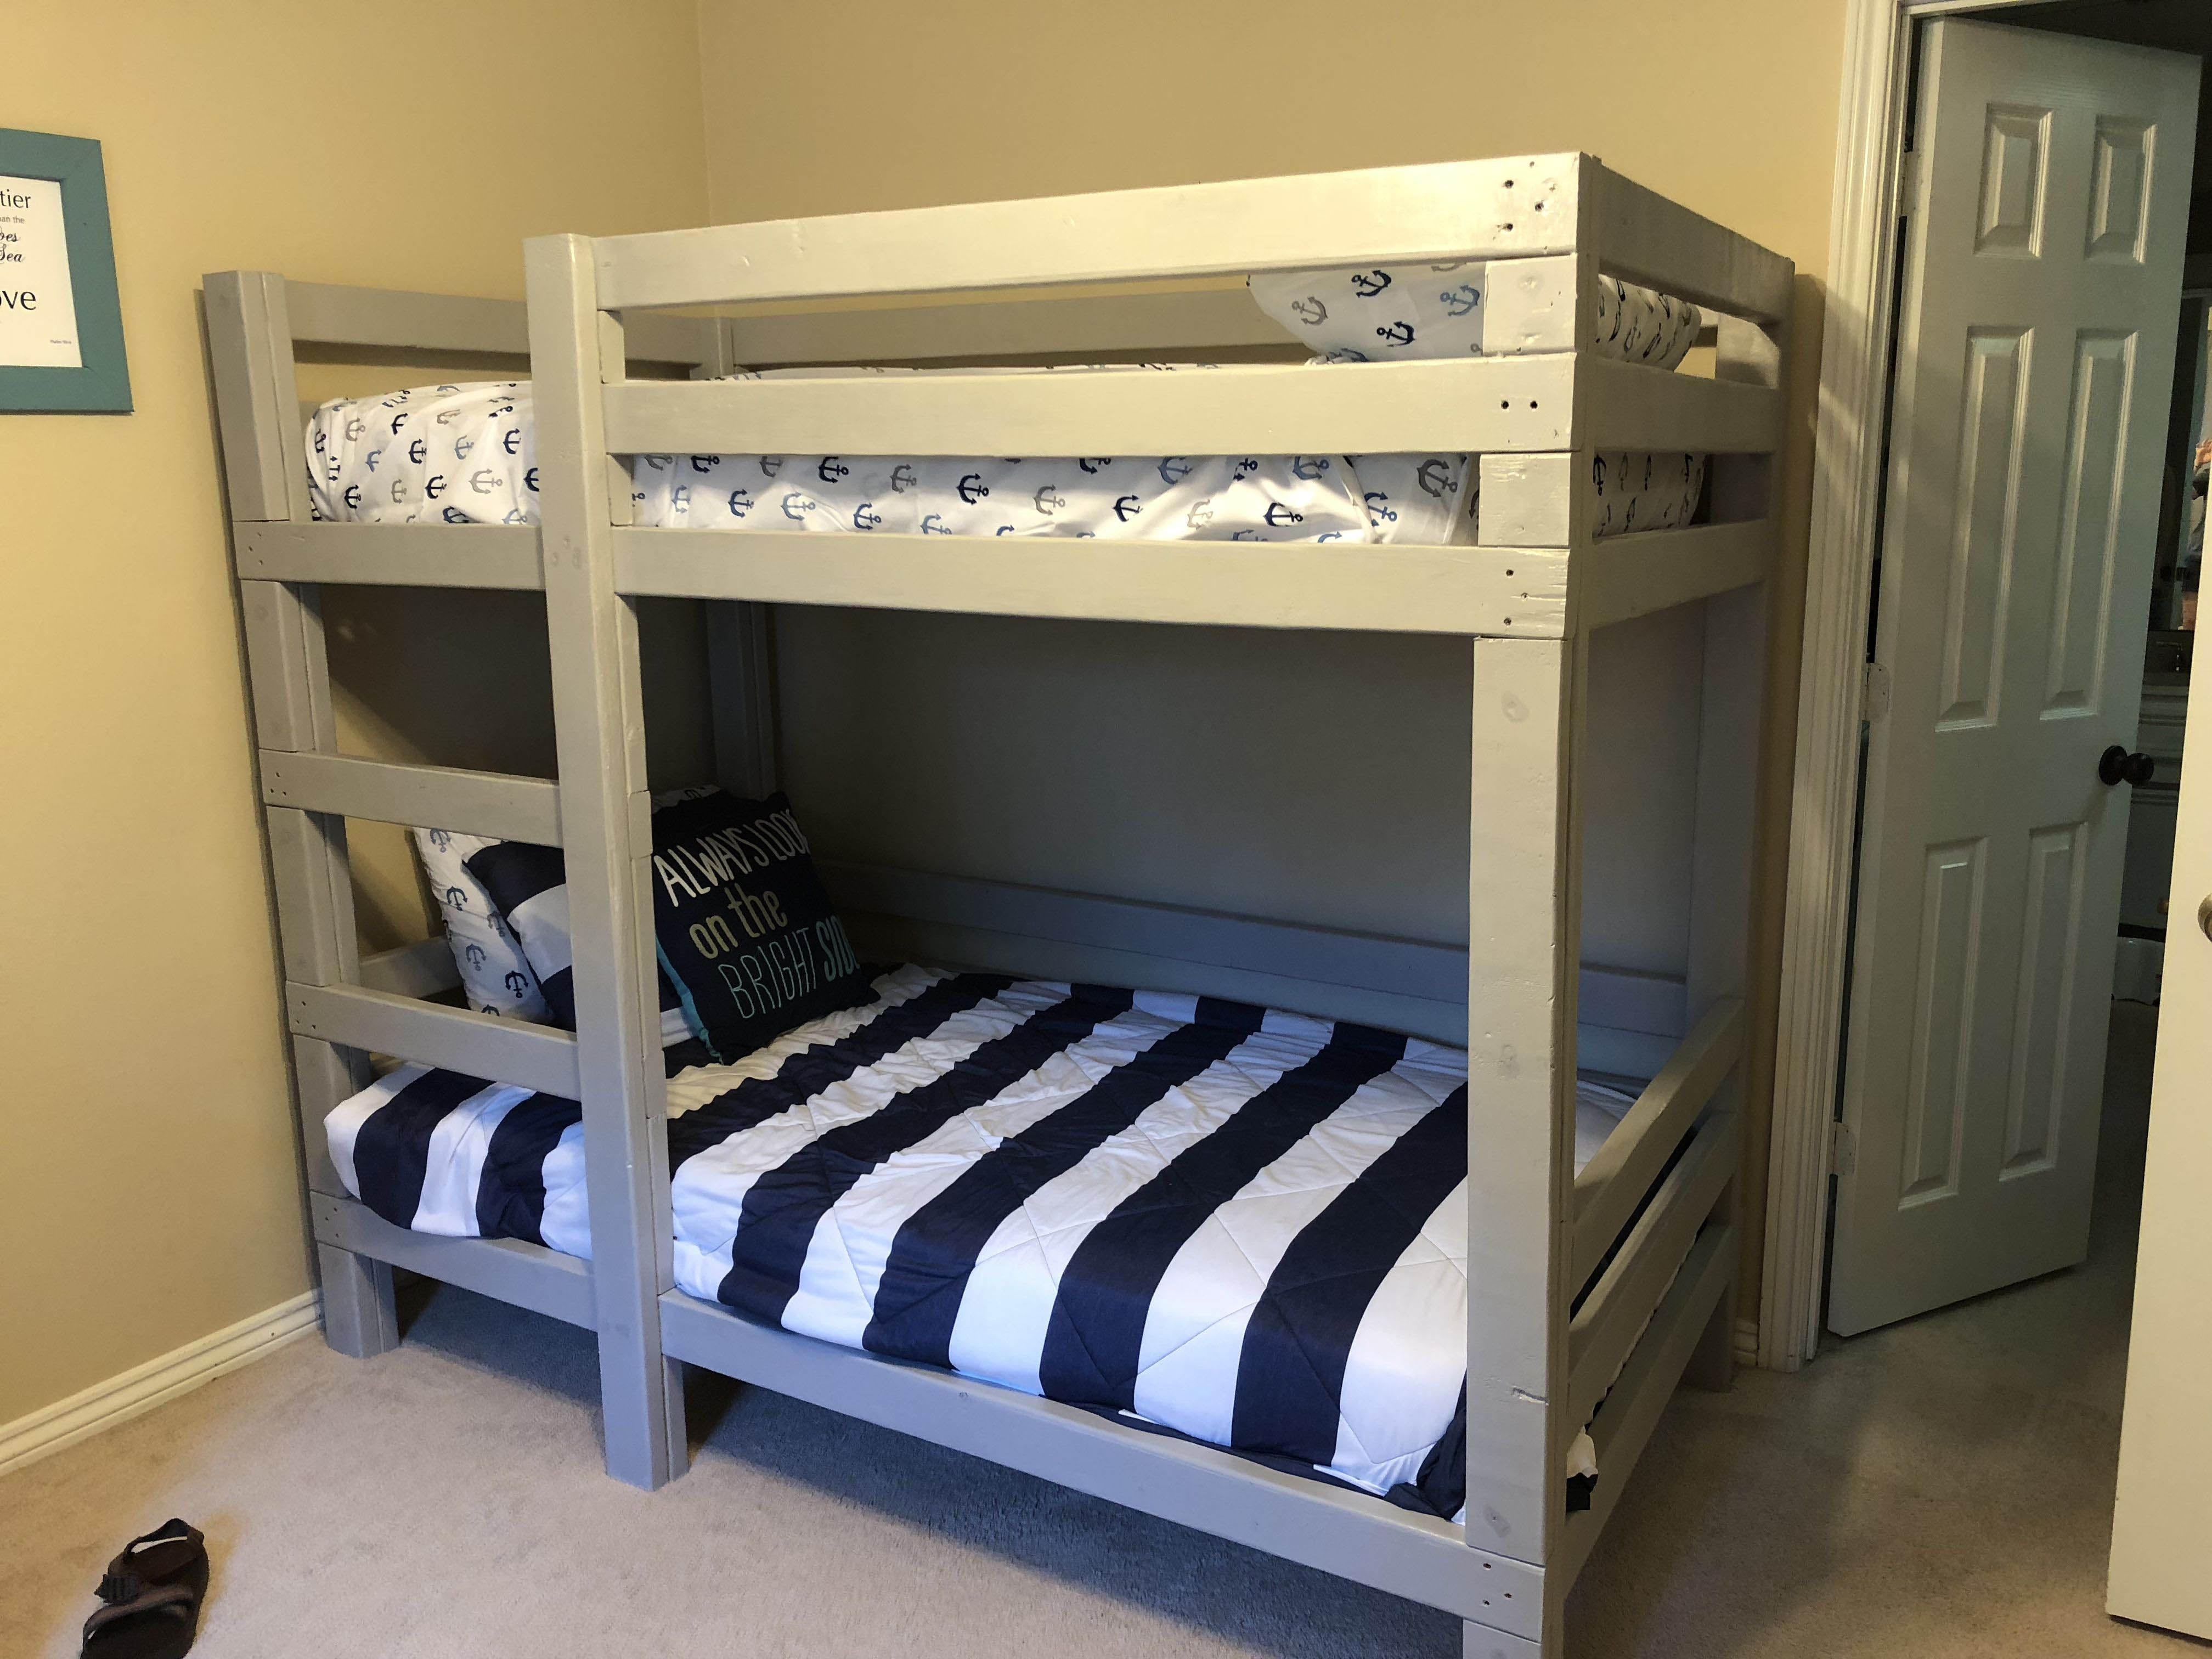 Free Diy Bunk Bed Plans Ideas That Will Save A Lot Of Bedroom Space Kids Bunk Beds Bunk Bed Designs Bunk Beds